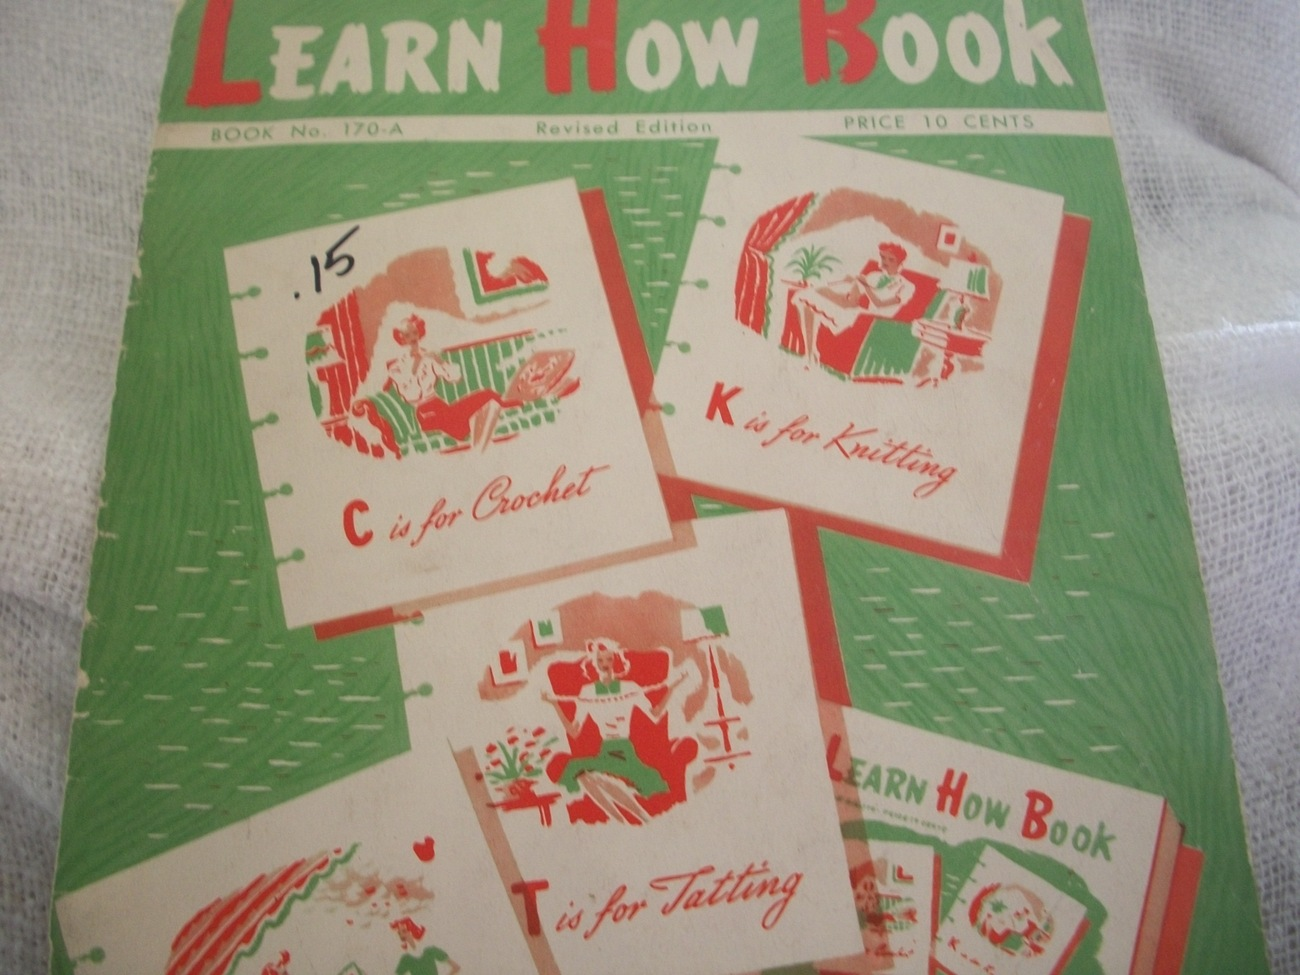 Primary image for Learn How Book for Crafts